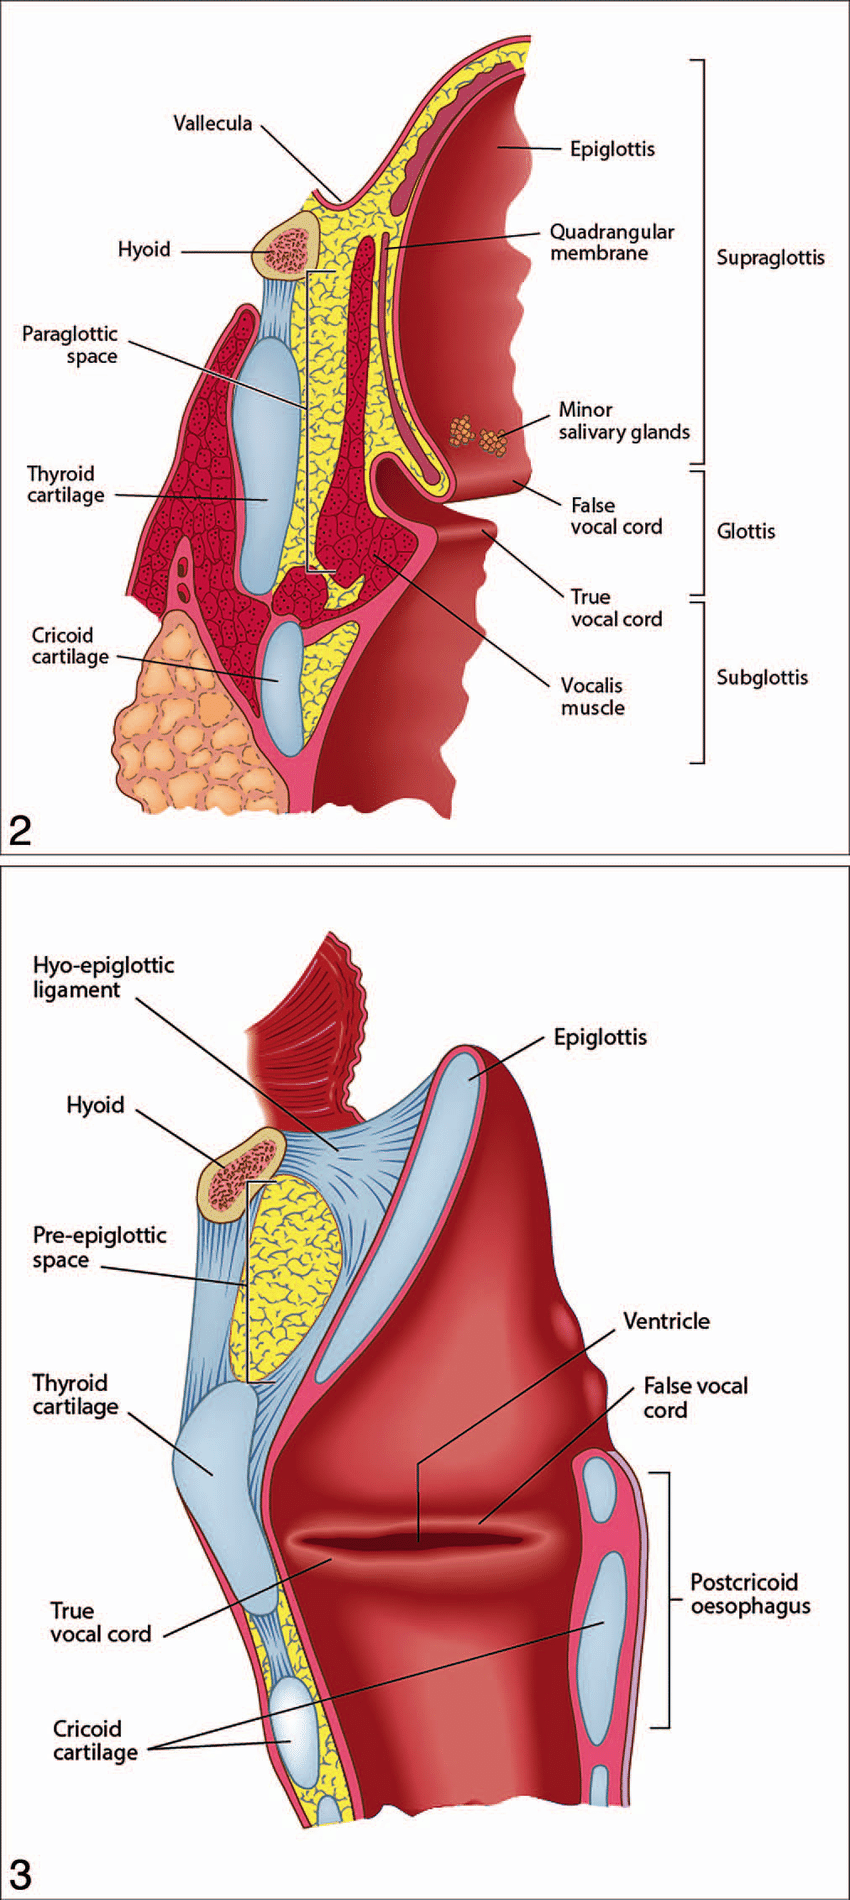 medium resolution of coronal section through the larynx to show the main anatomic structures the subsites and